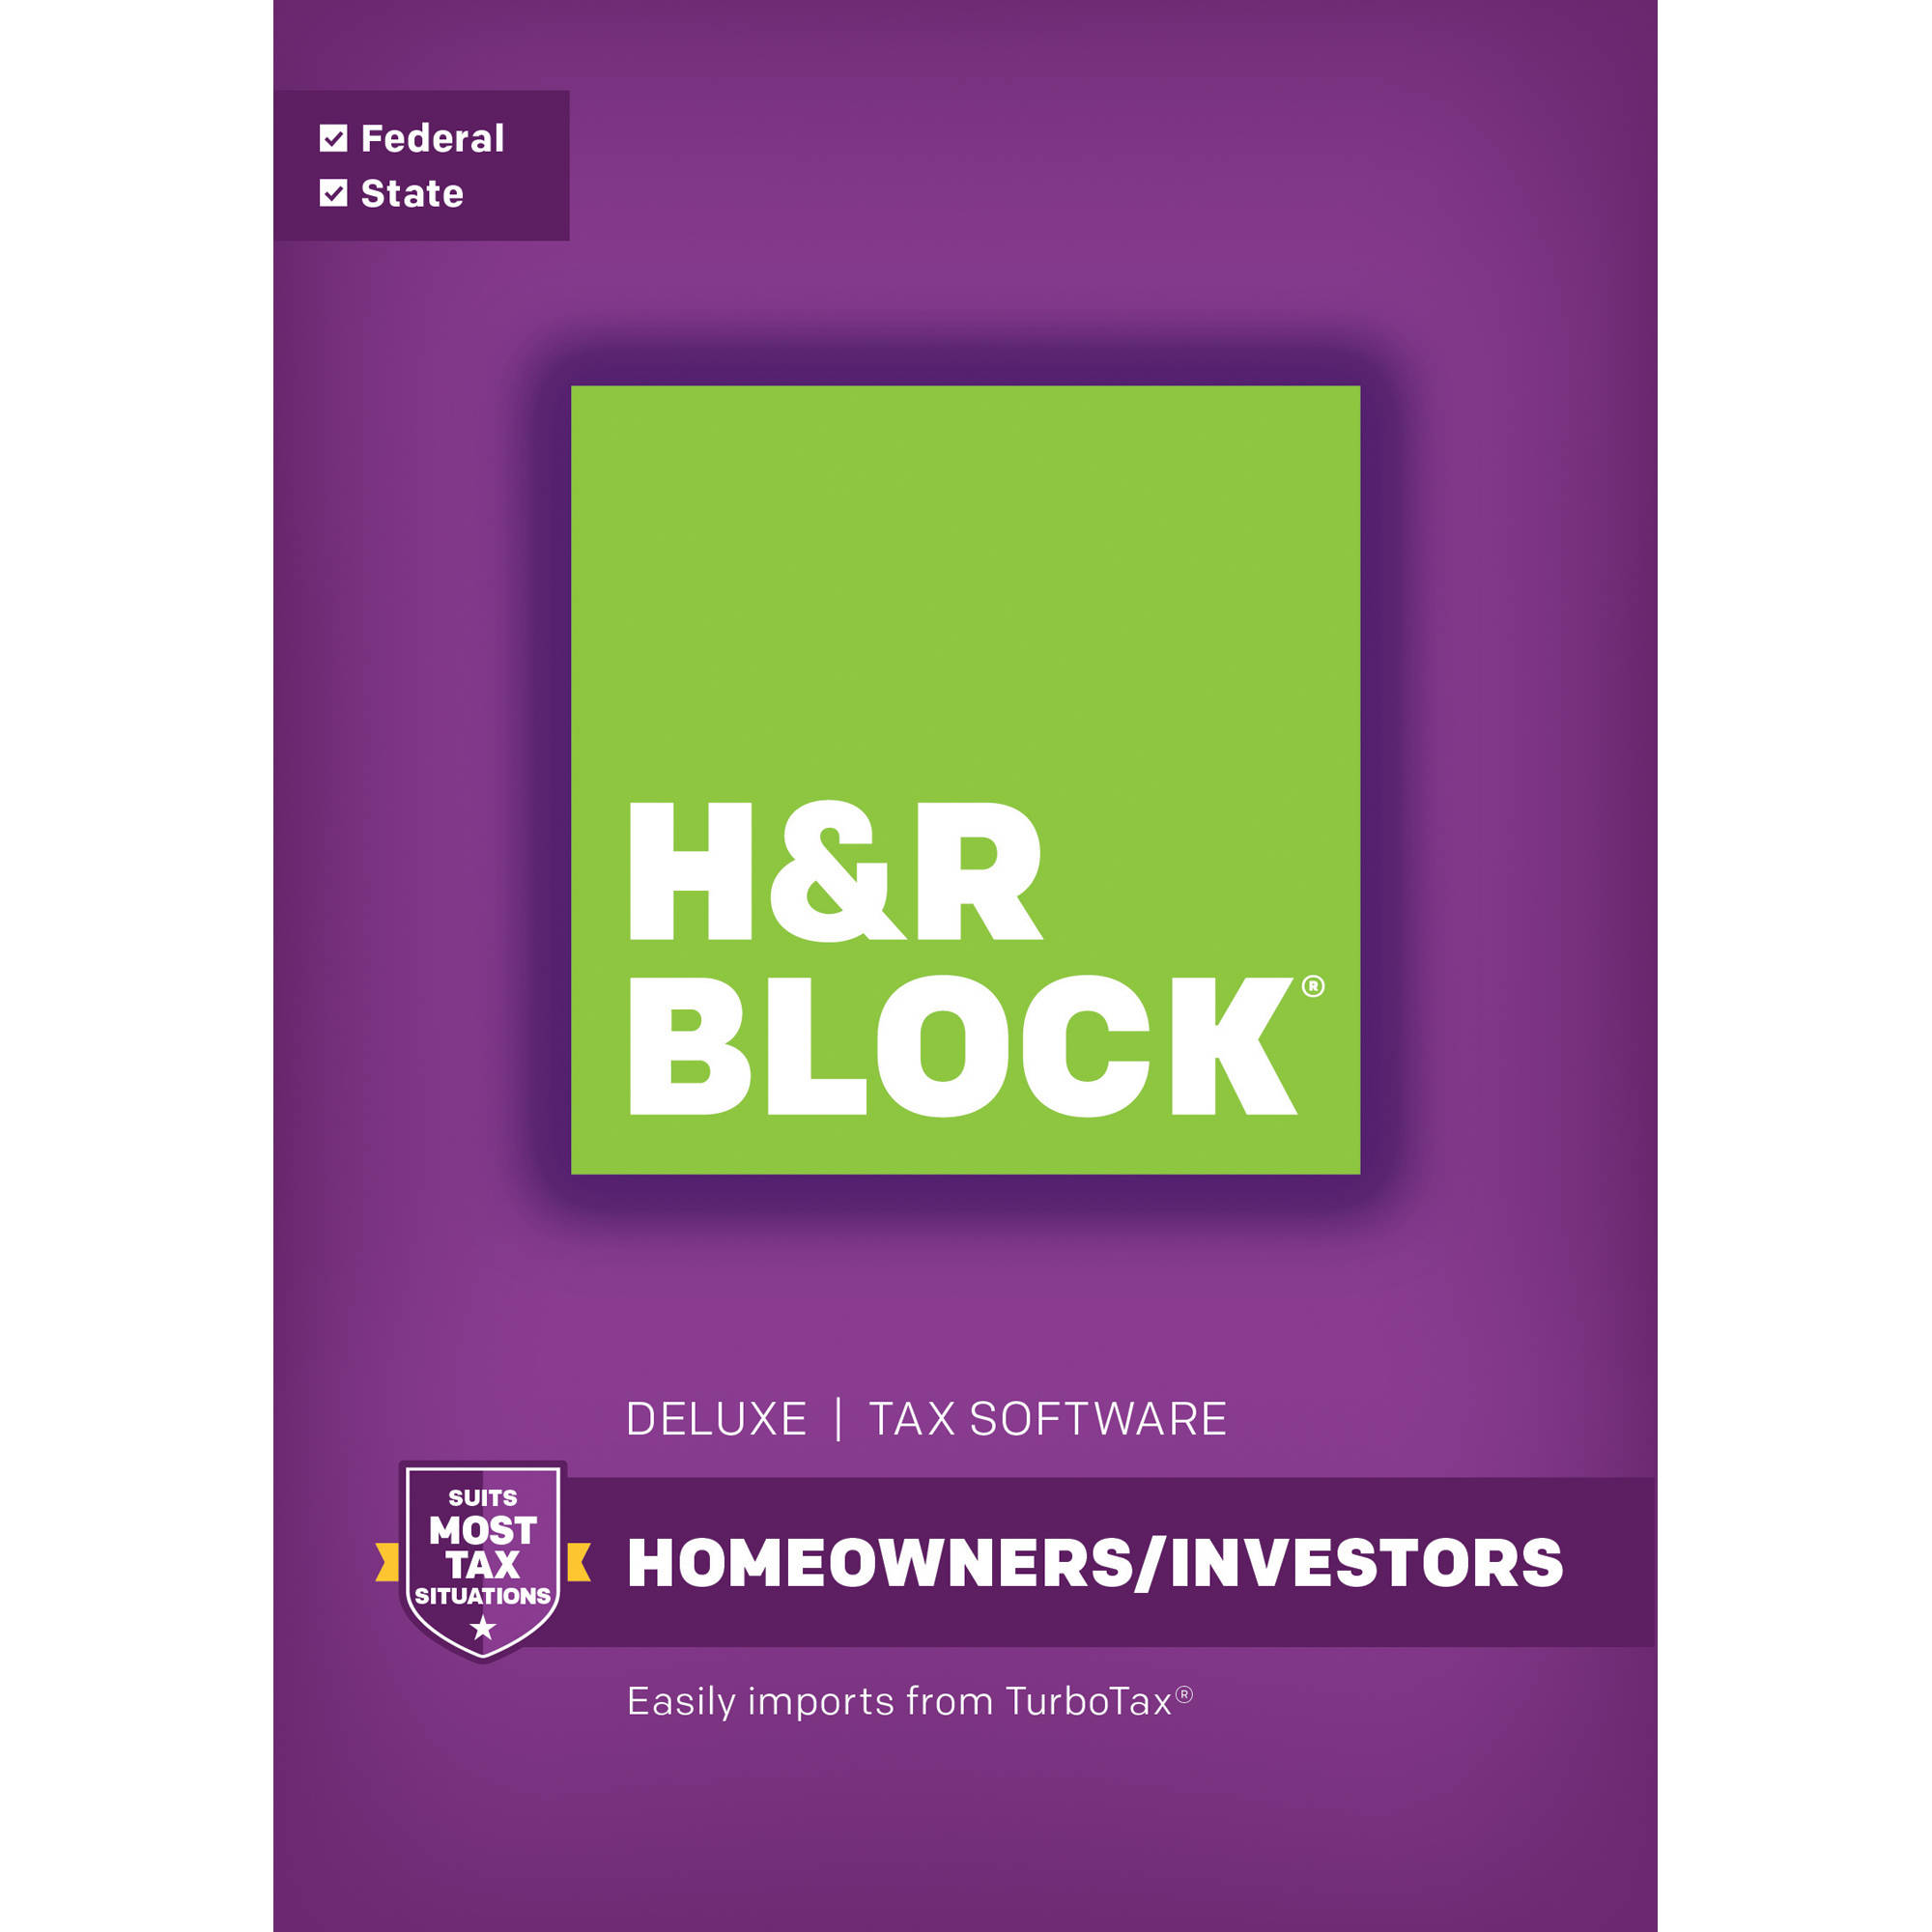 H&R Block 16 Deluxe Tax Software (Federal and State) for Windows (Email Delivery)